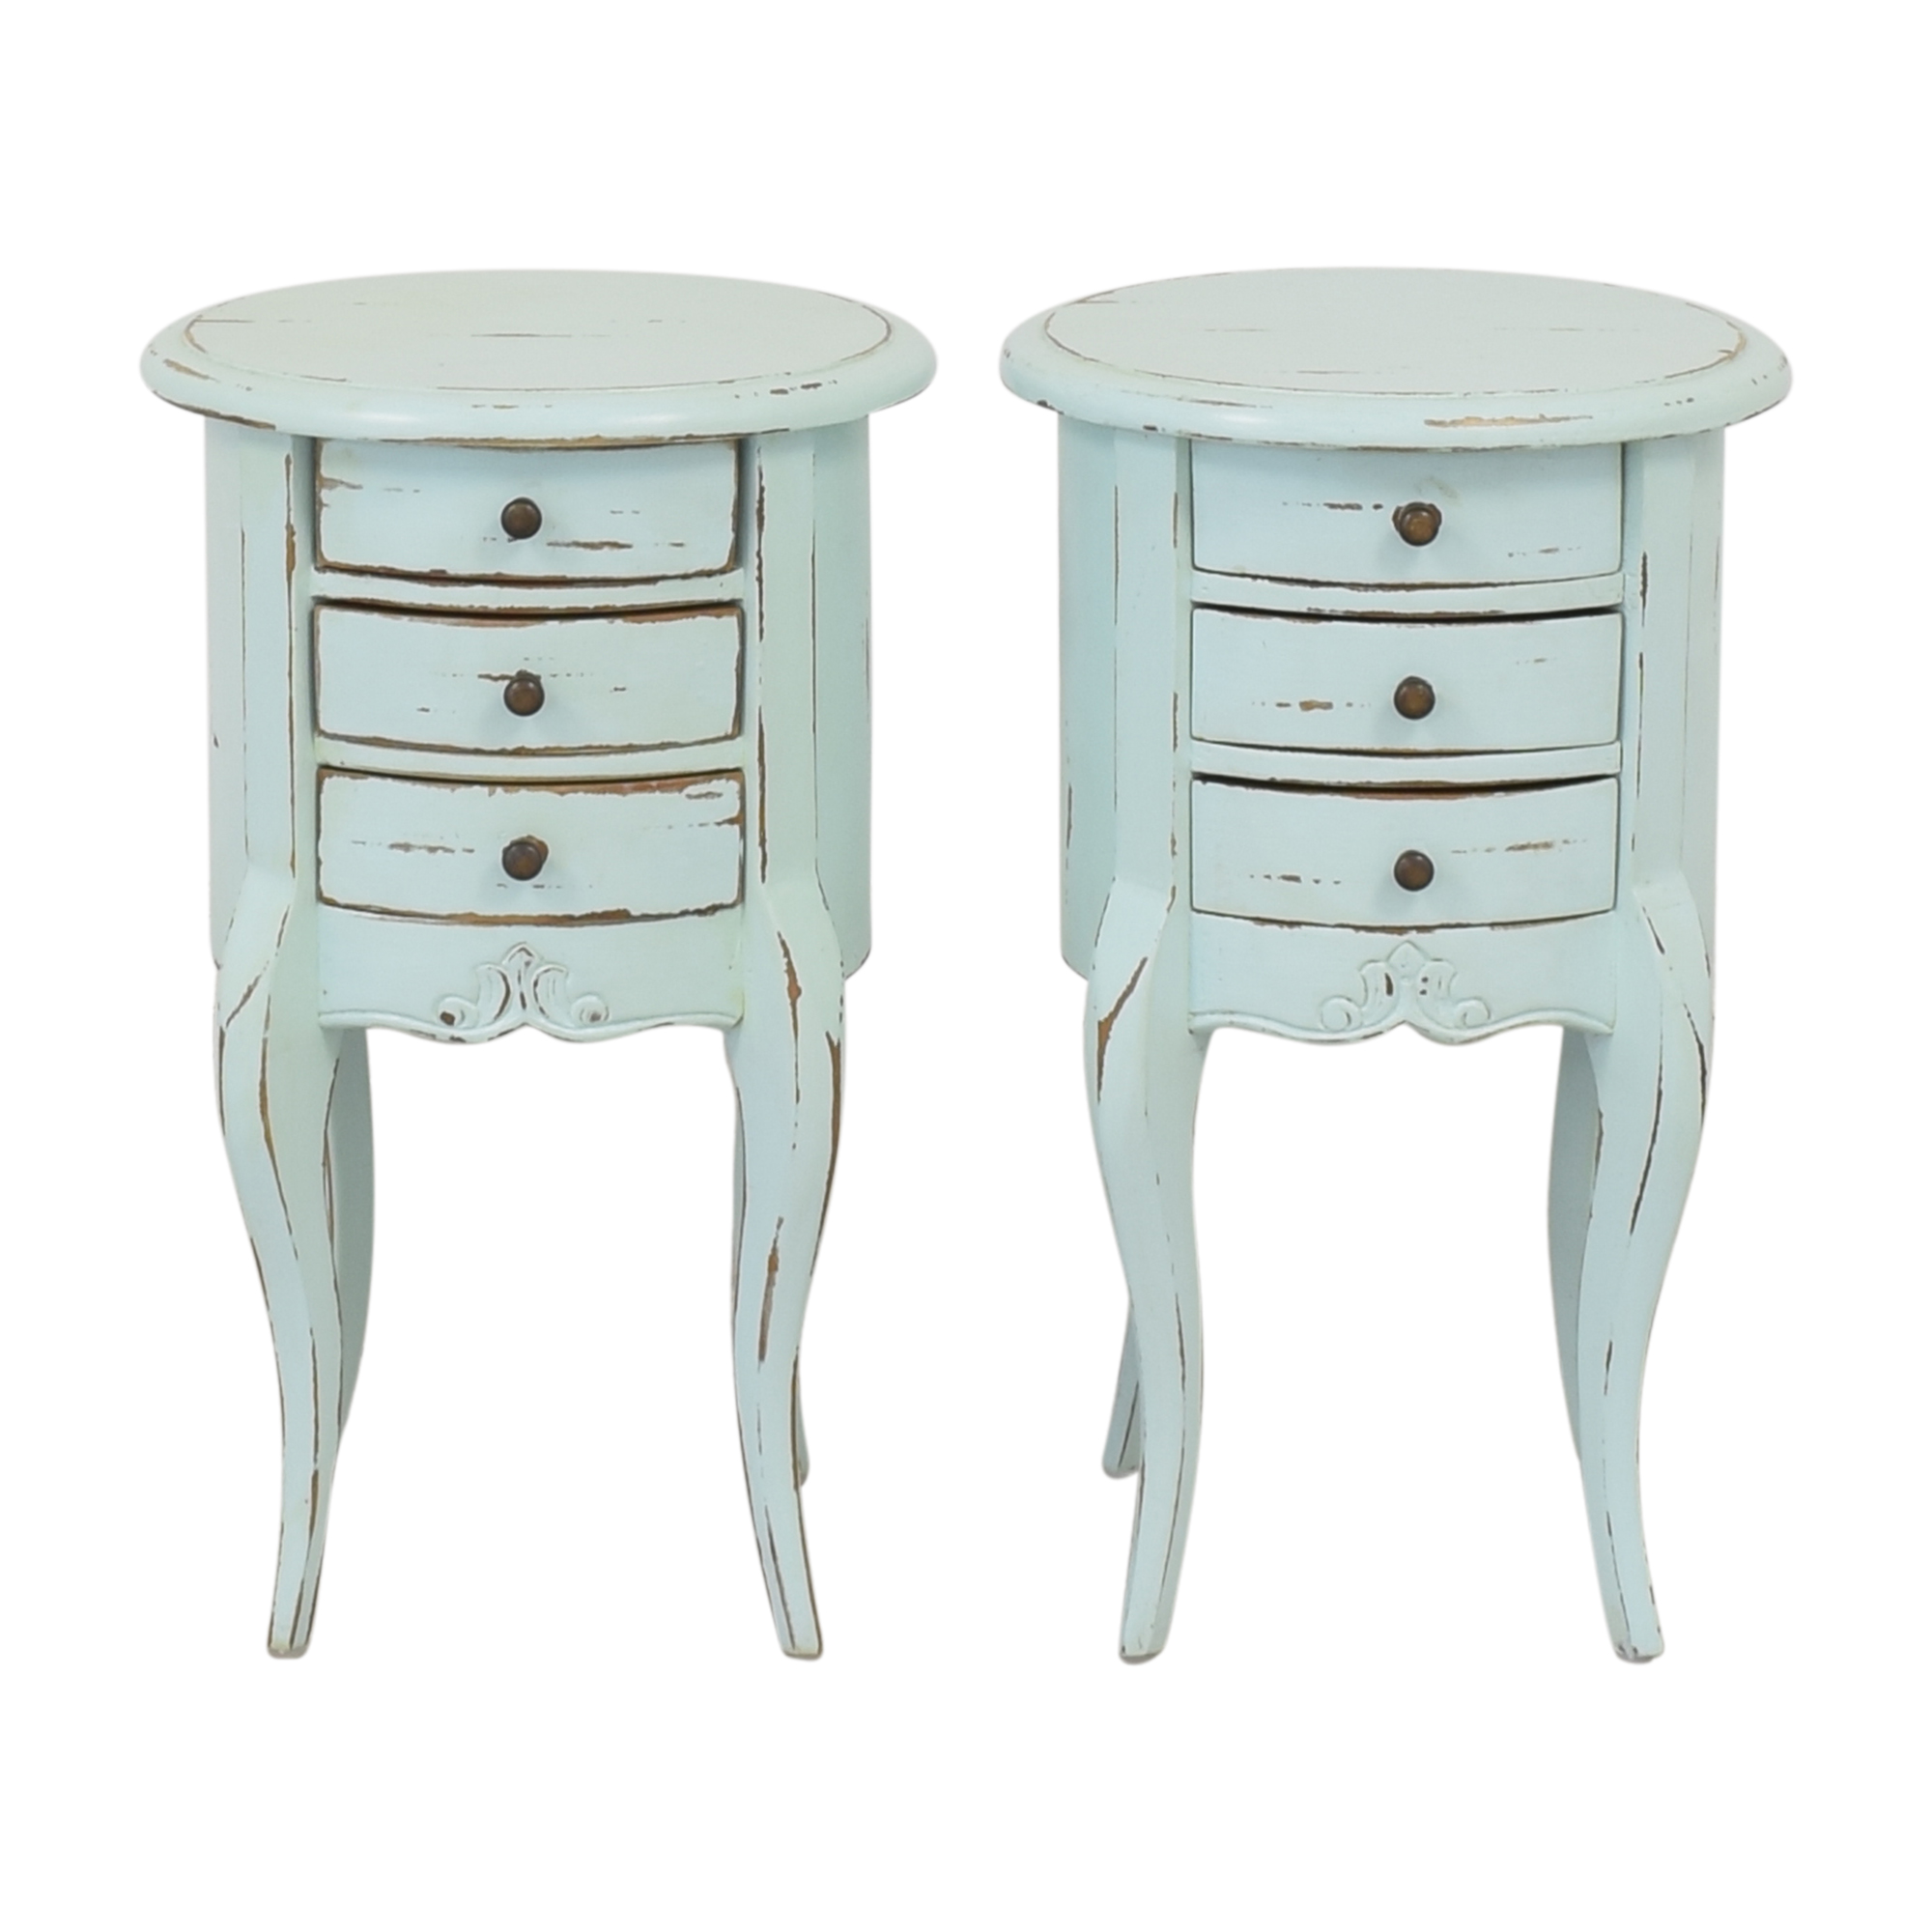 Vintage Weathered Nightstands / End Tables